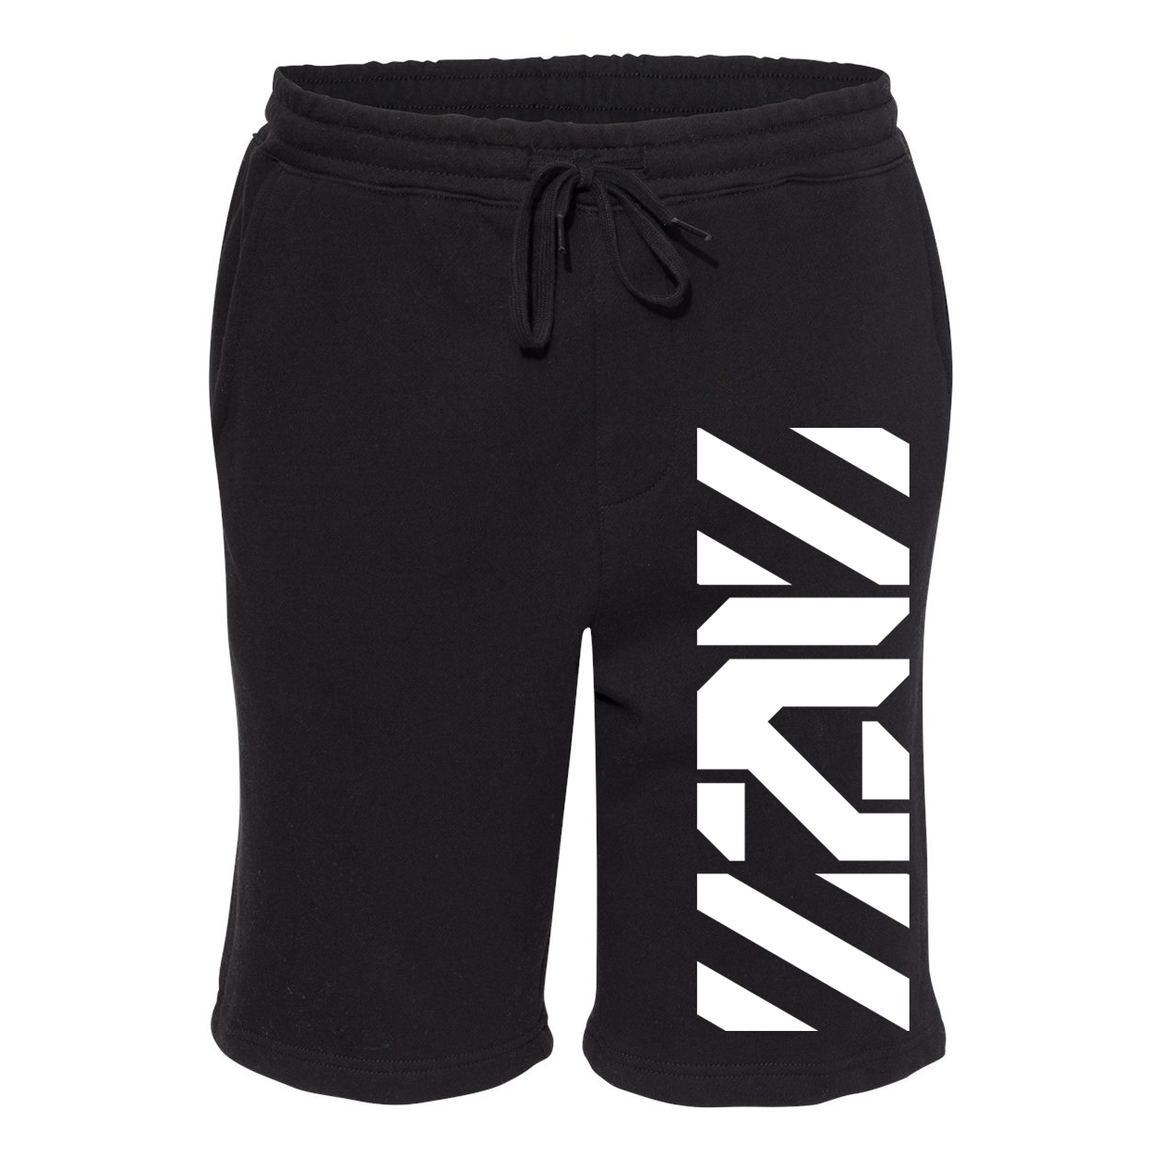 Blitz Shorts - Black